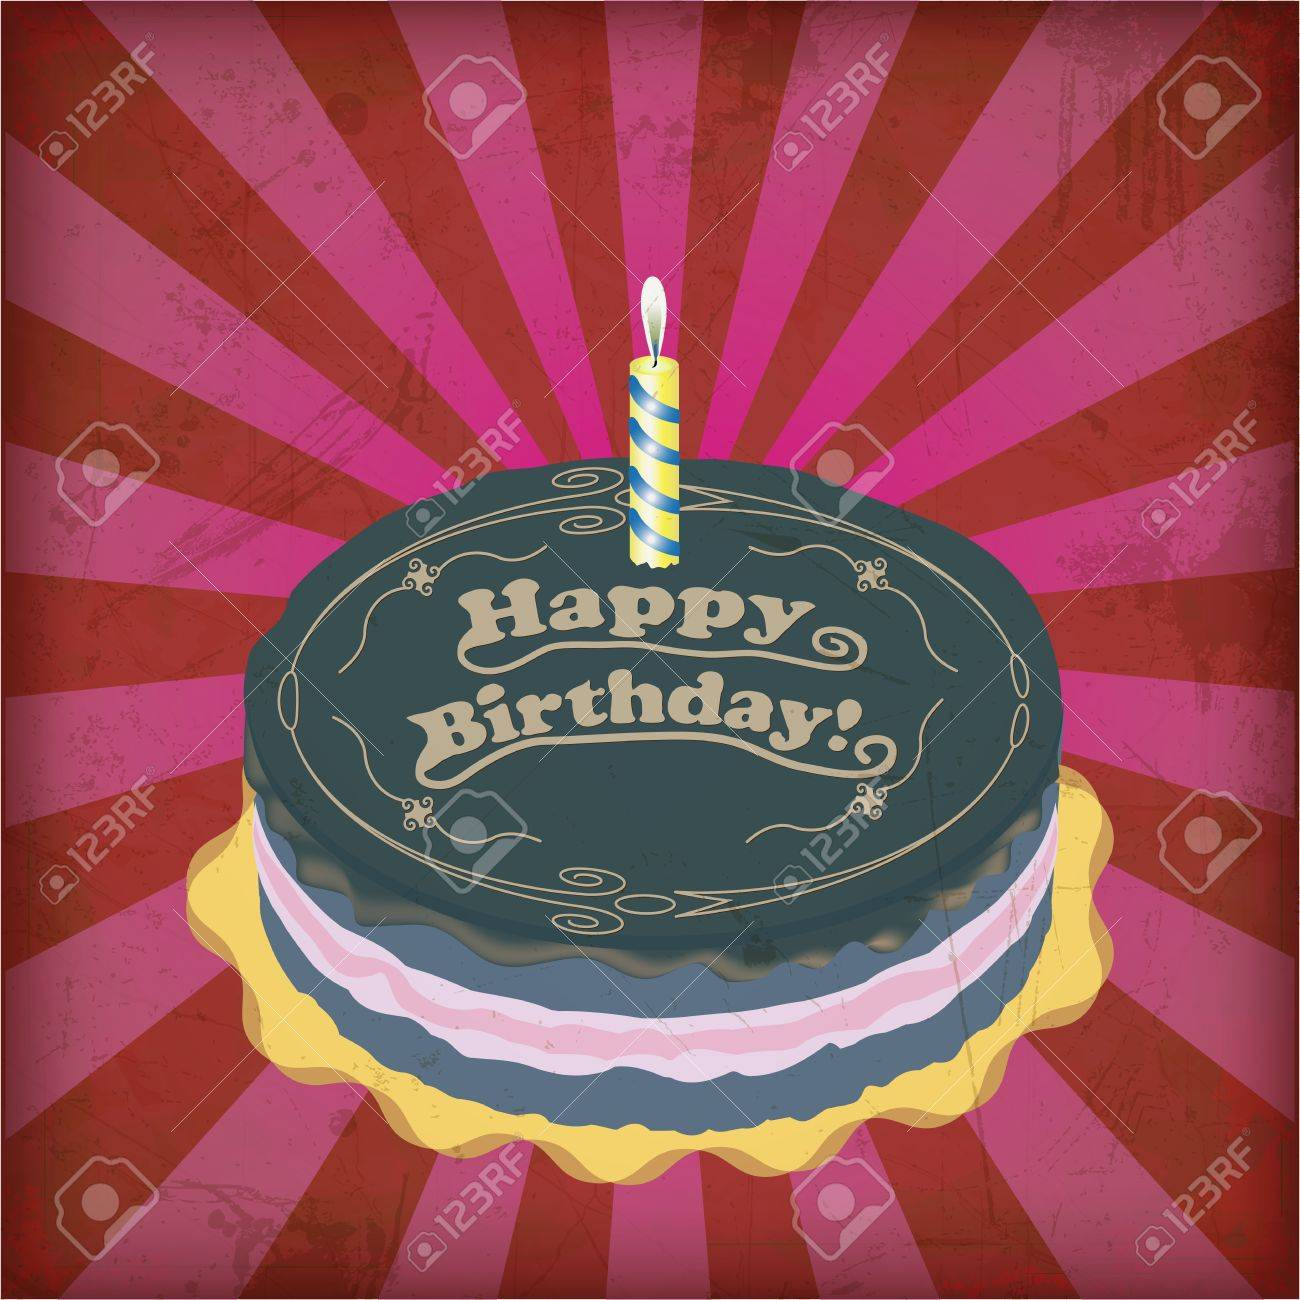 Vintage Birthday Cake With Grunge Effect Royalty Free Cliparts